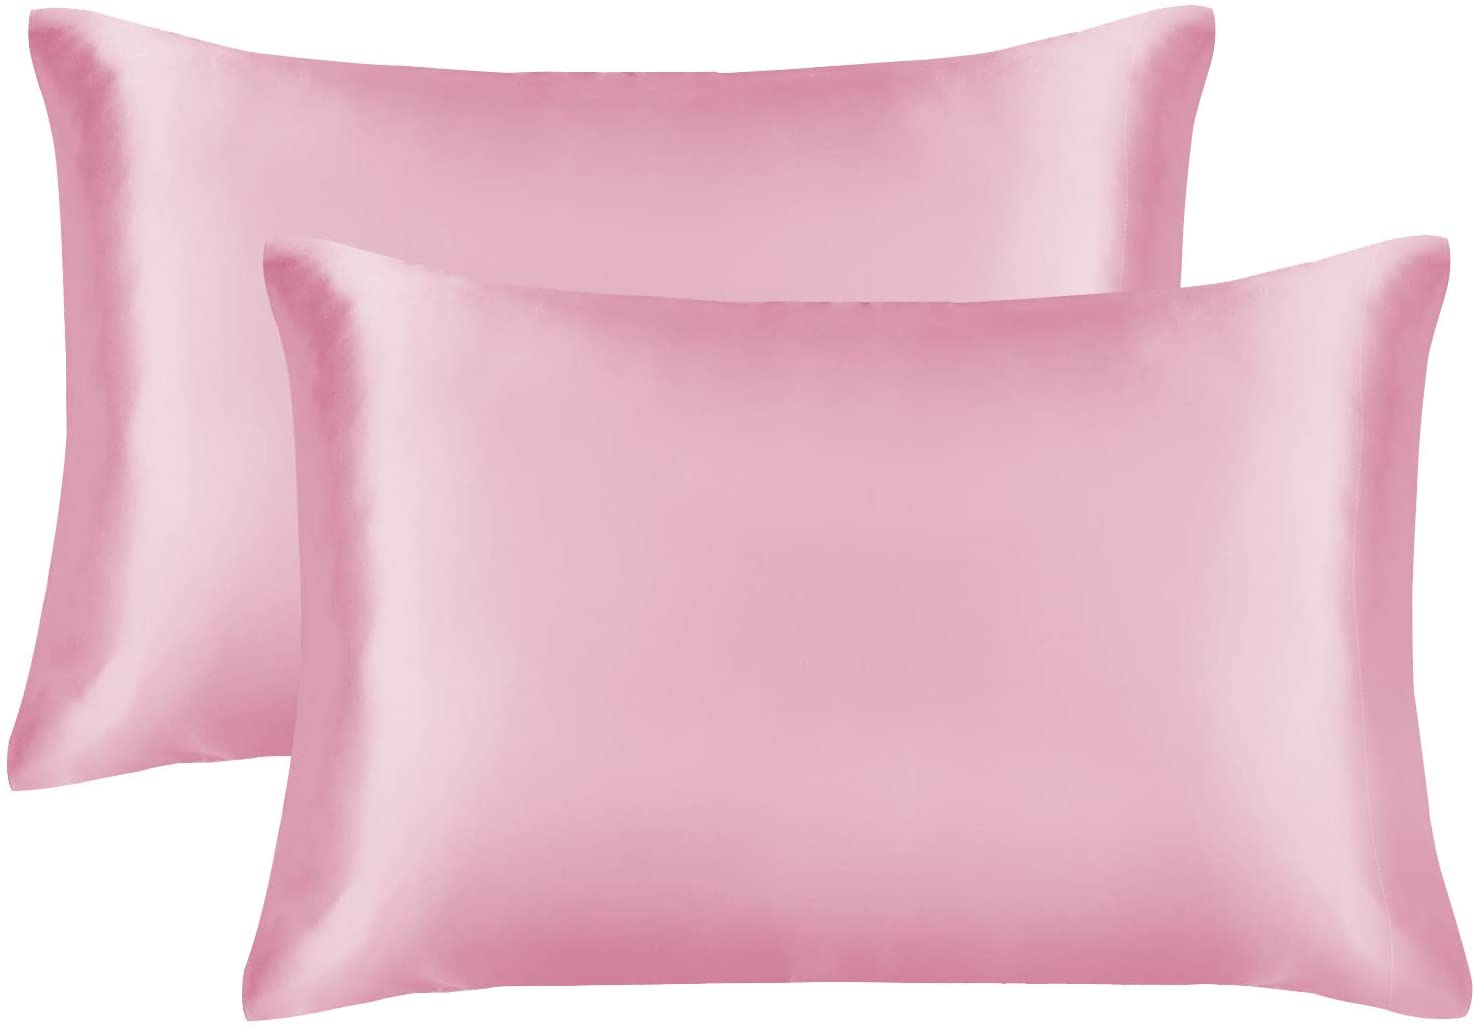 EXQ Home Satin Pillowcase for Hair and Skin,Cooling Pillow Cases King Size Pillow Case Set of 2 Satin Pillow Covers with Envelope Closure Pink (20x40 inches)